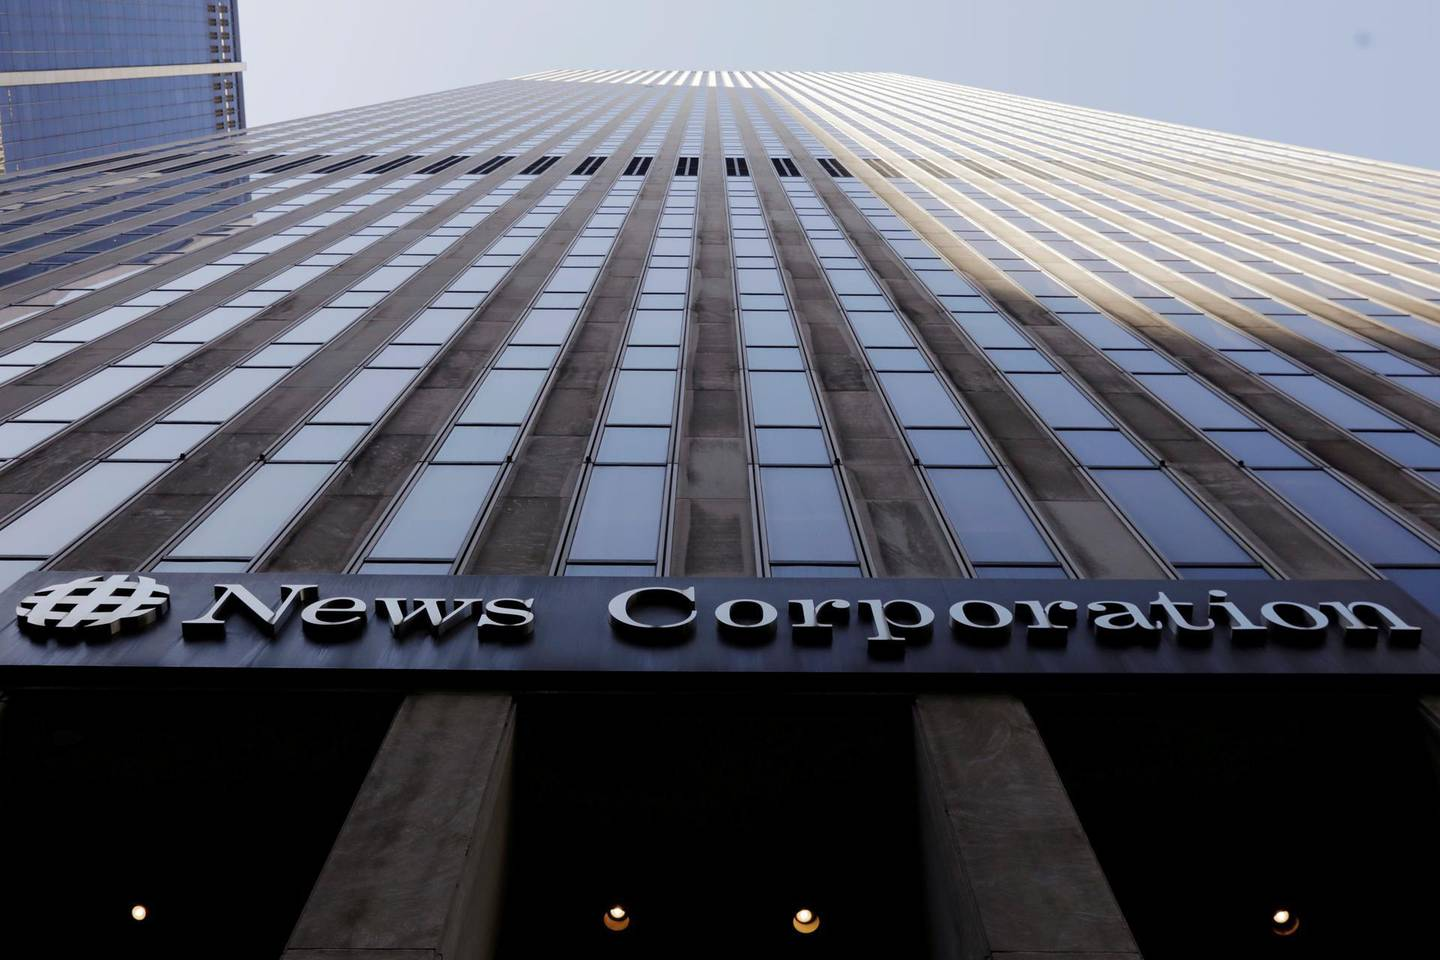 FILE PHOTO: The News Corporation logo is displayed on the side of a building in midtown Manhattan in New York, U.S., February 27, 2018.  REUTERS/Lucas Jackson/File Photo